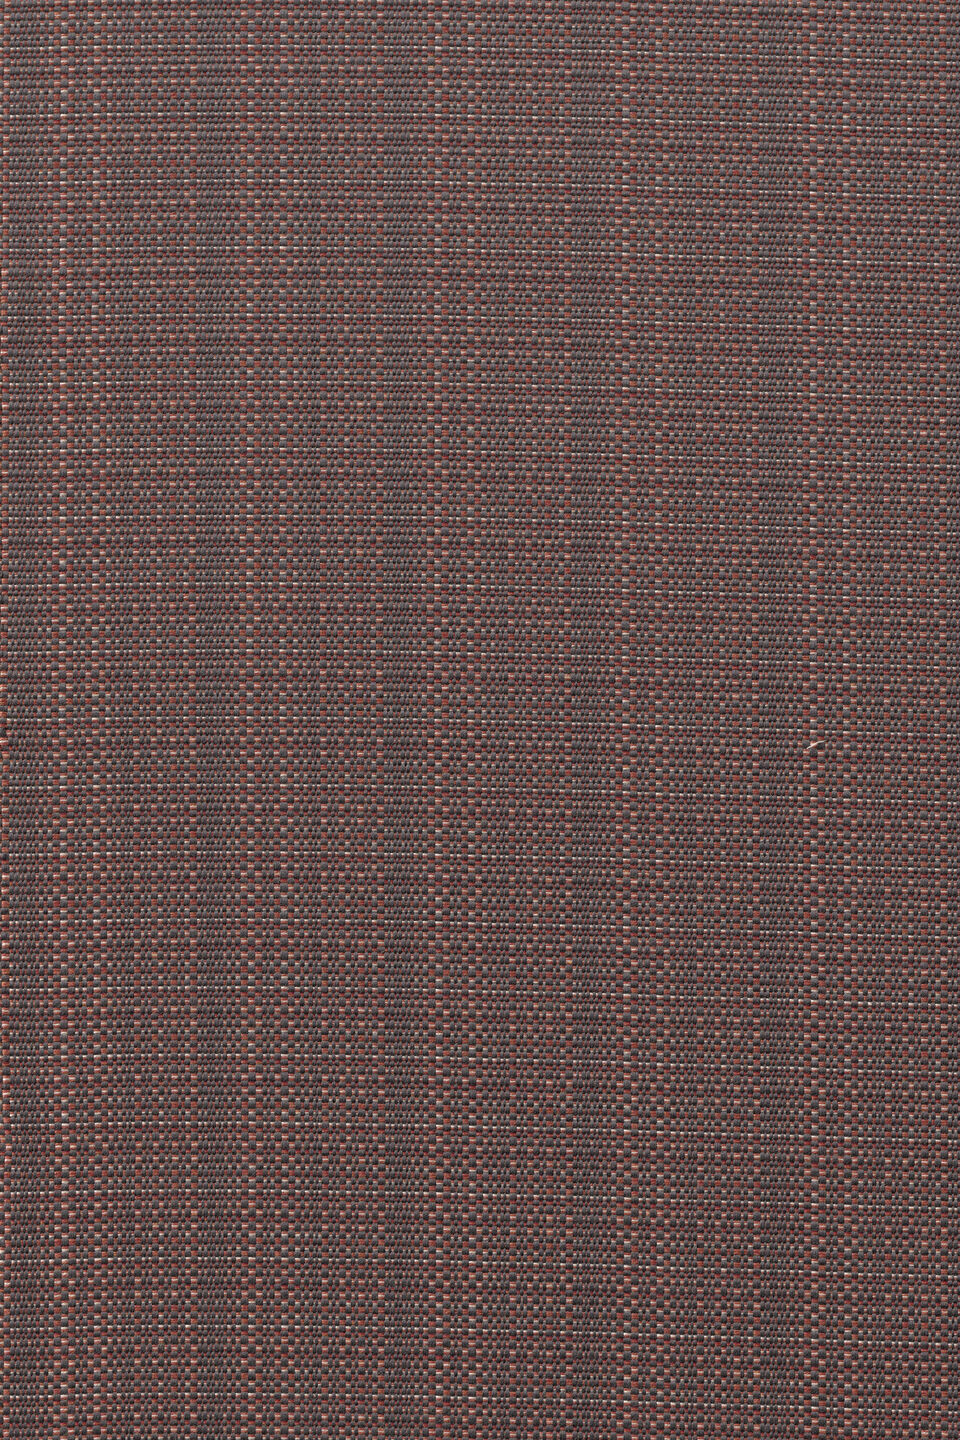 01094 Core Graphite Brown